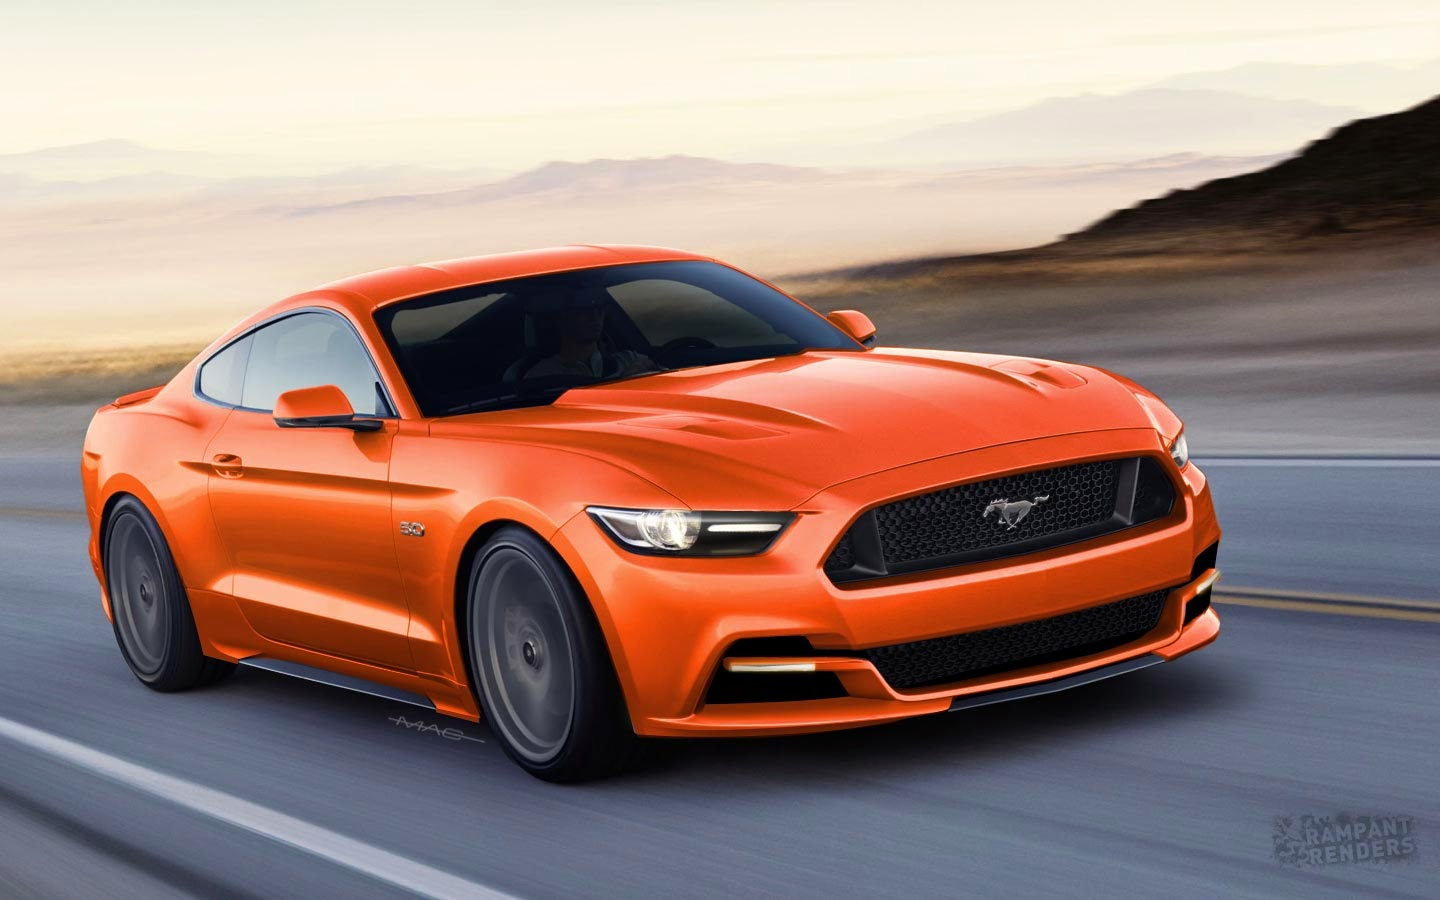 Captivating 2015 Ford Mustang Convertible Sports Cars Are Now More Powerful